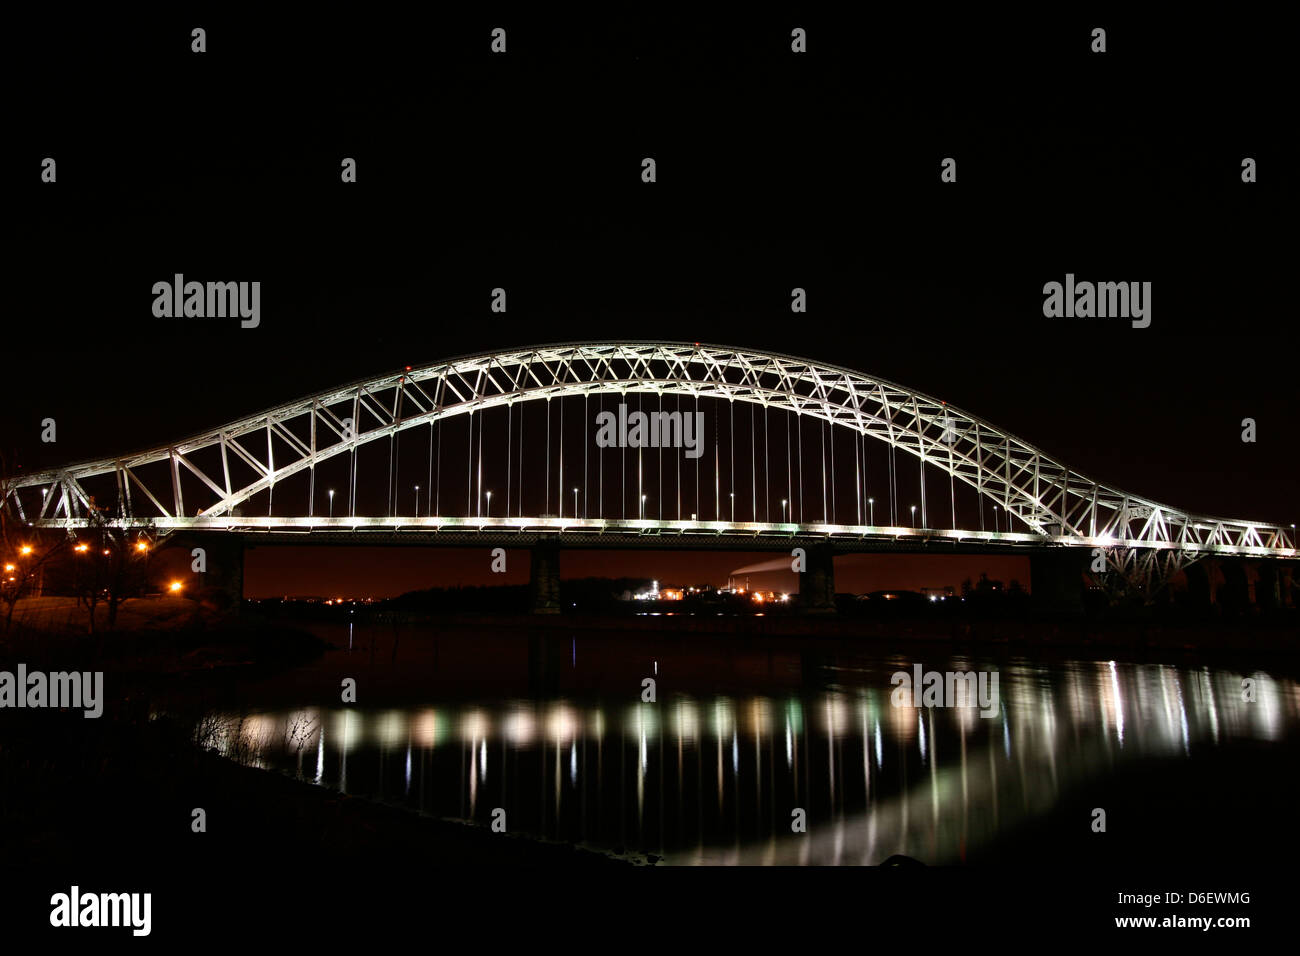 Runcorn, or Silver Jubilee Bridge over River Mersey and Manchester Ship Canal, Runcorn, Cheshire, England illuminated - Stock Image